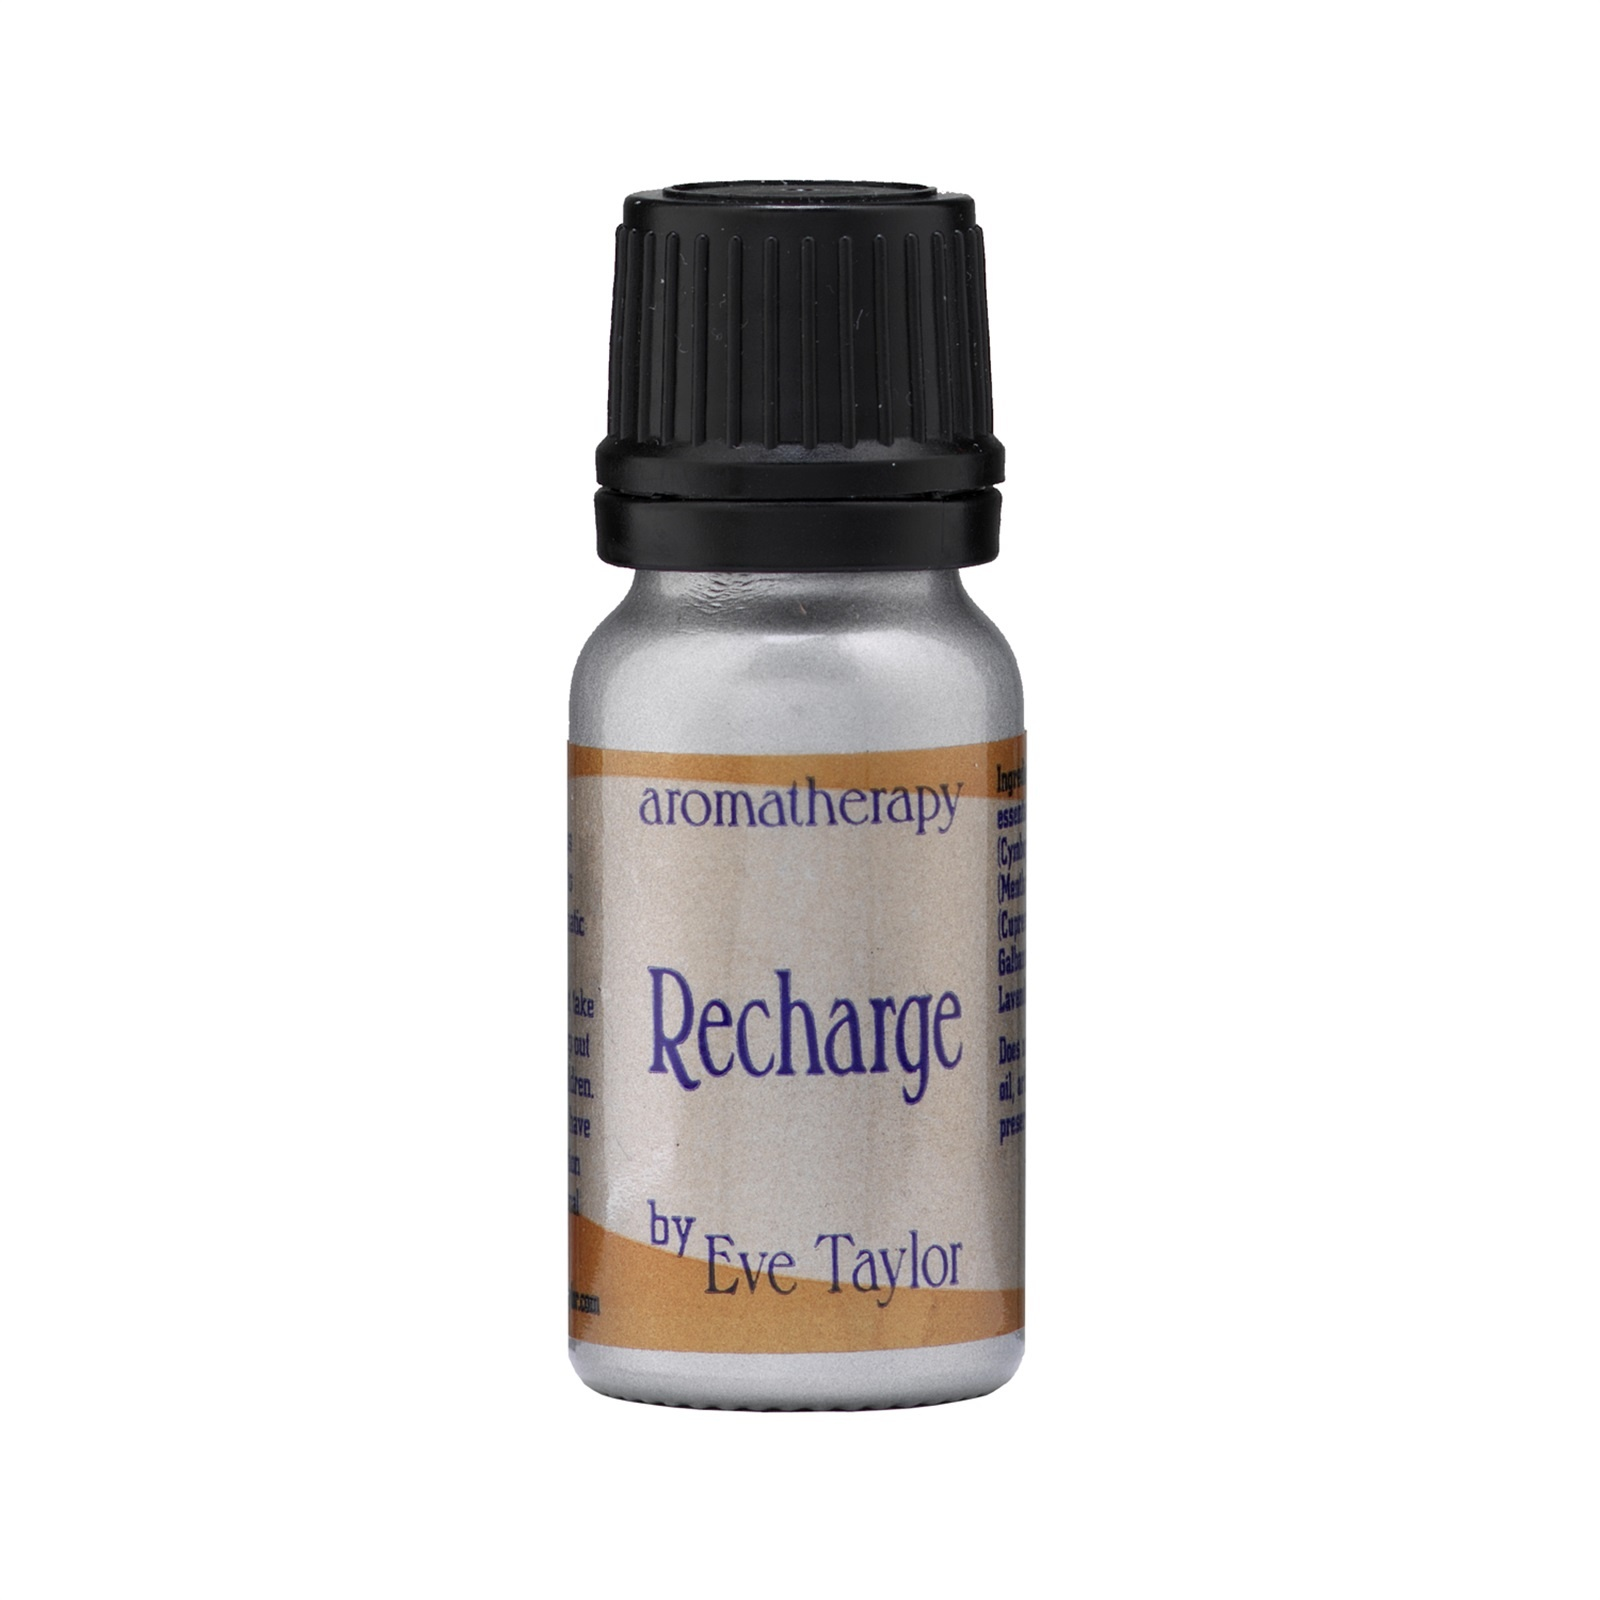 Eve Taylor Recharge diffuser